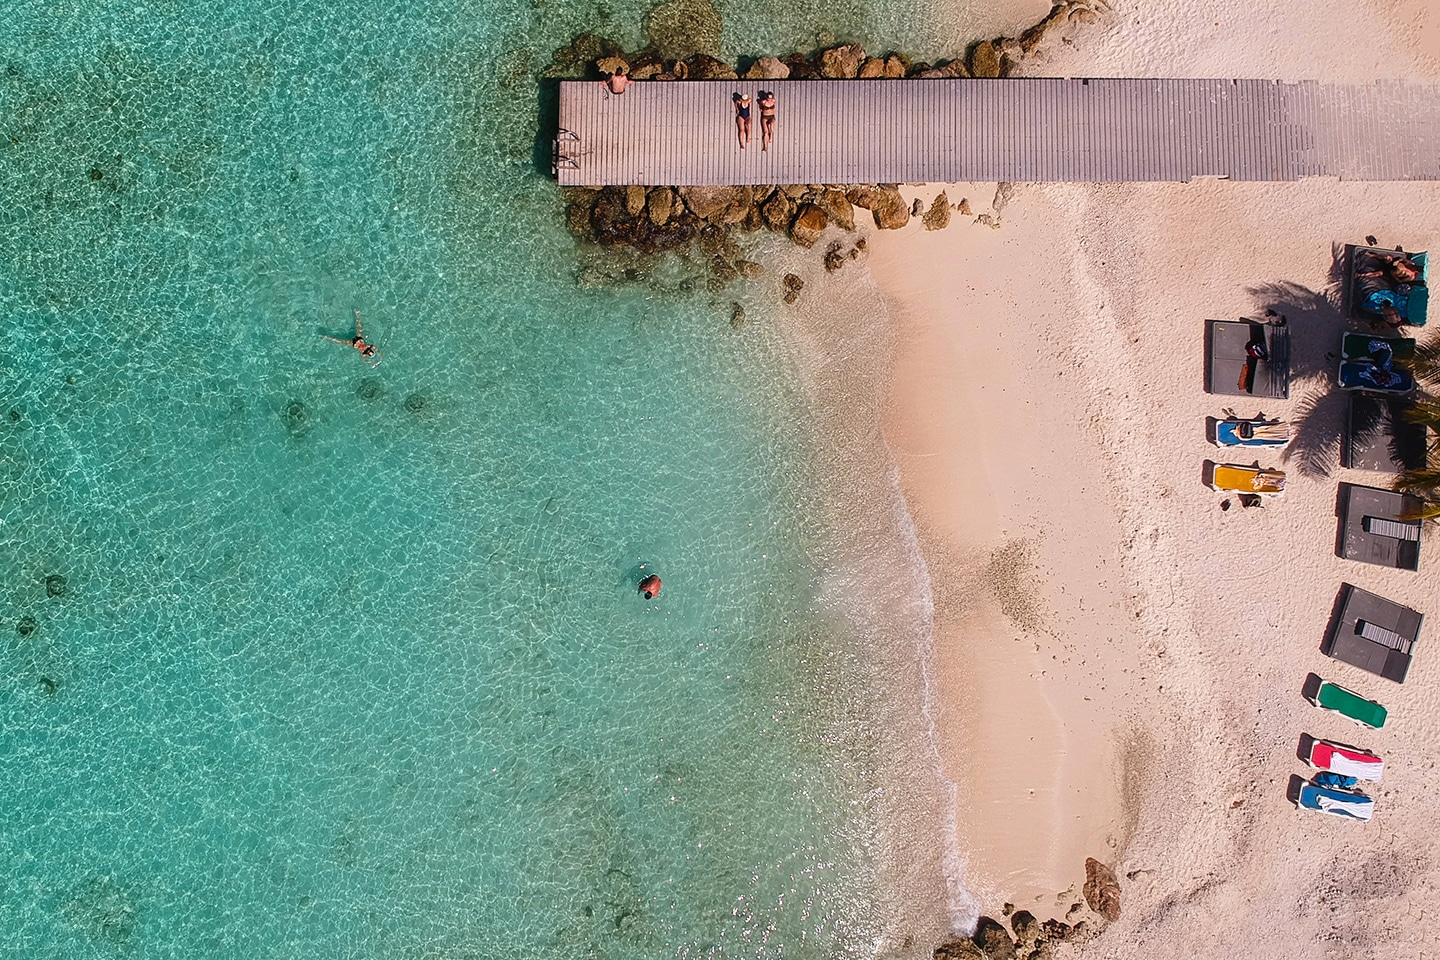 Drone shot of a beach in Curacao